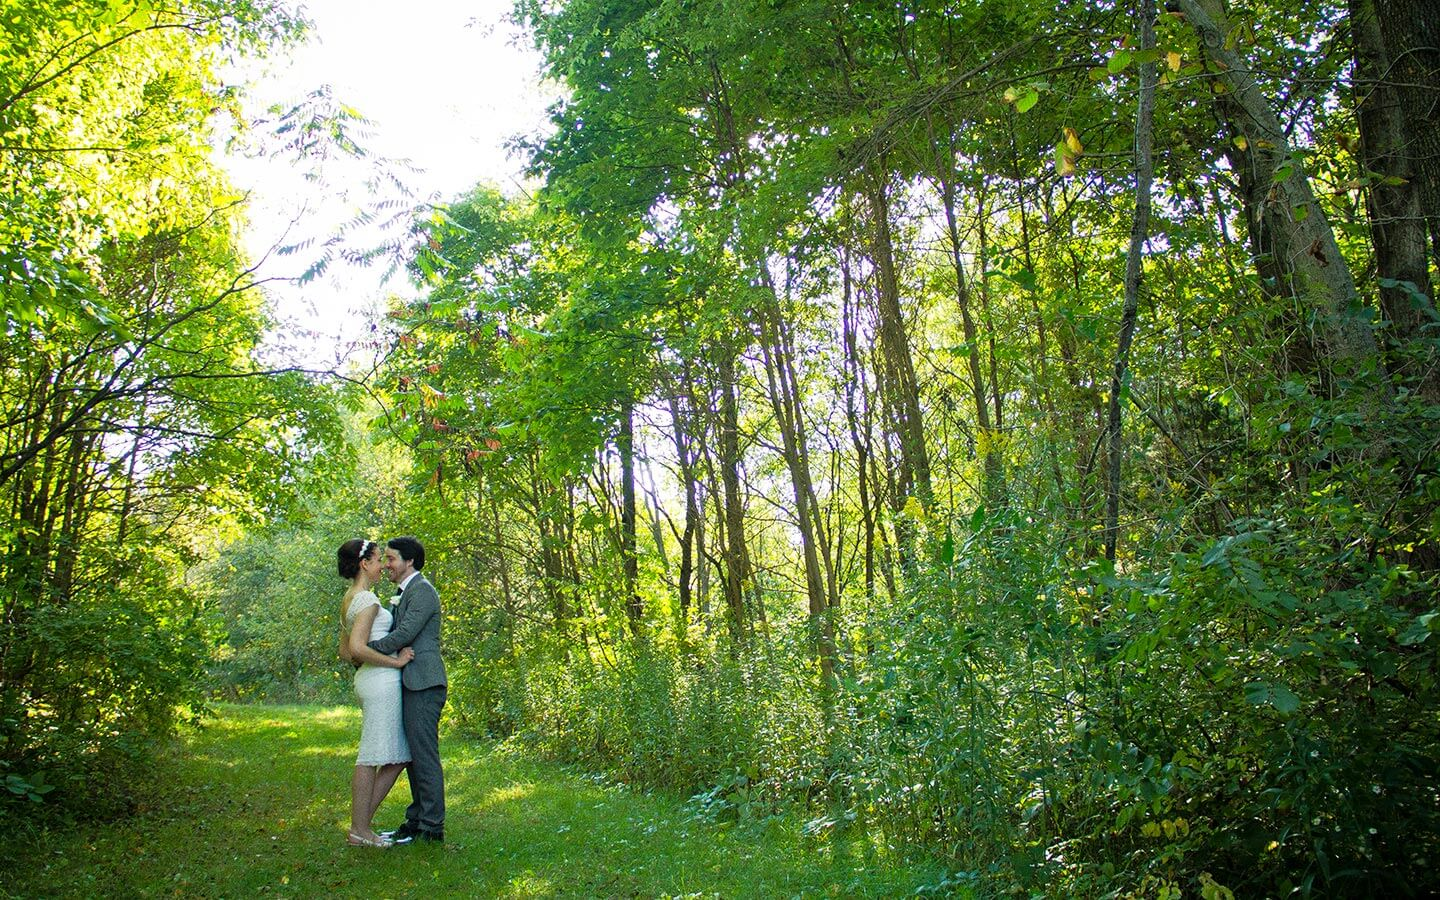 bride and groom in a field surrounded by trees